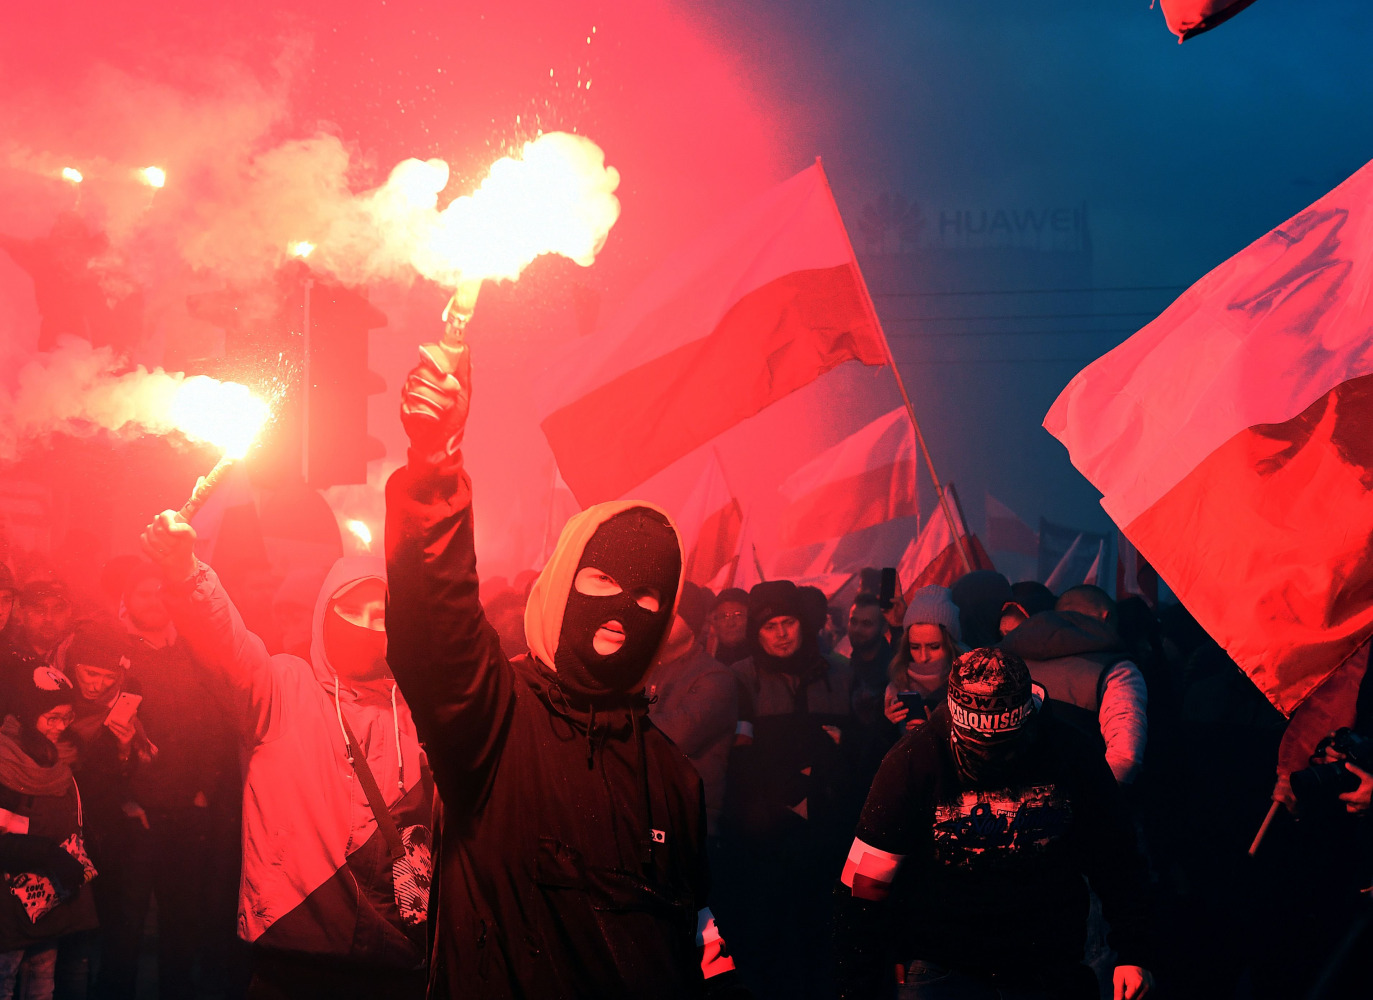 Nationalists, anti-facists march through Warsaw on Poland's Independence Day